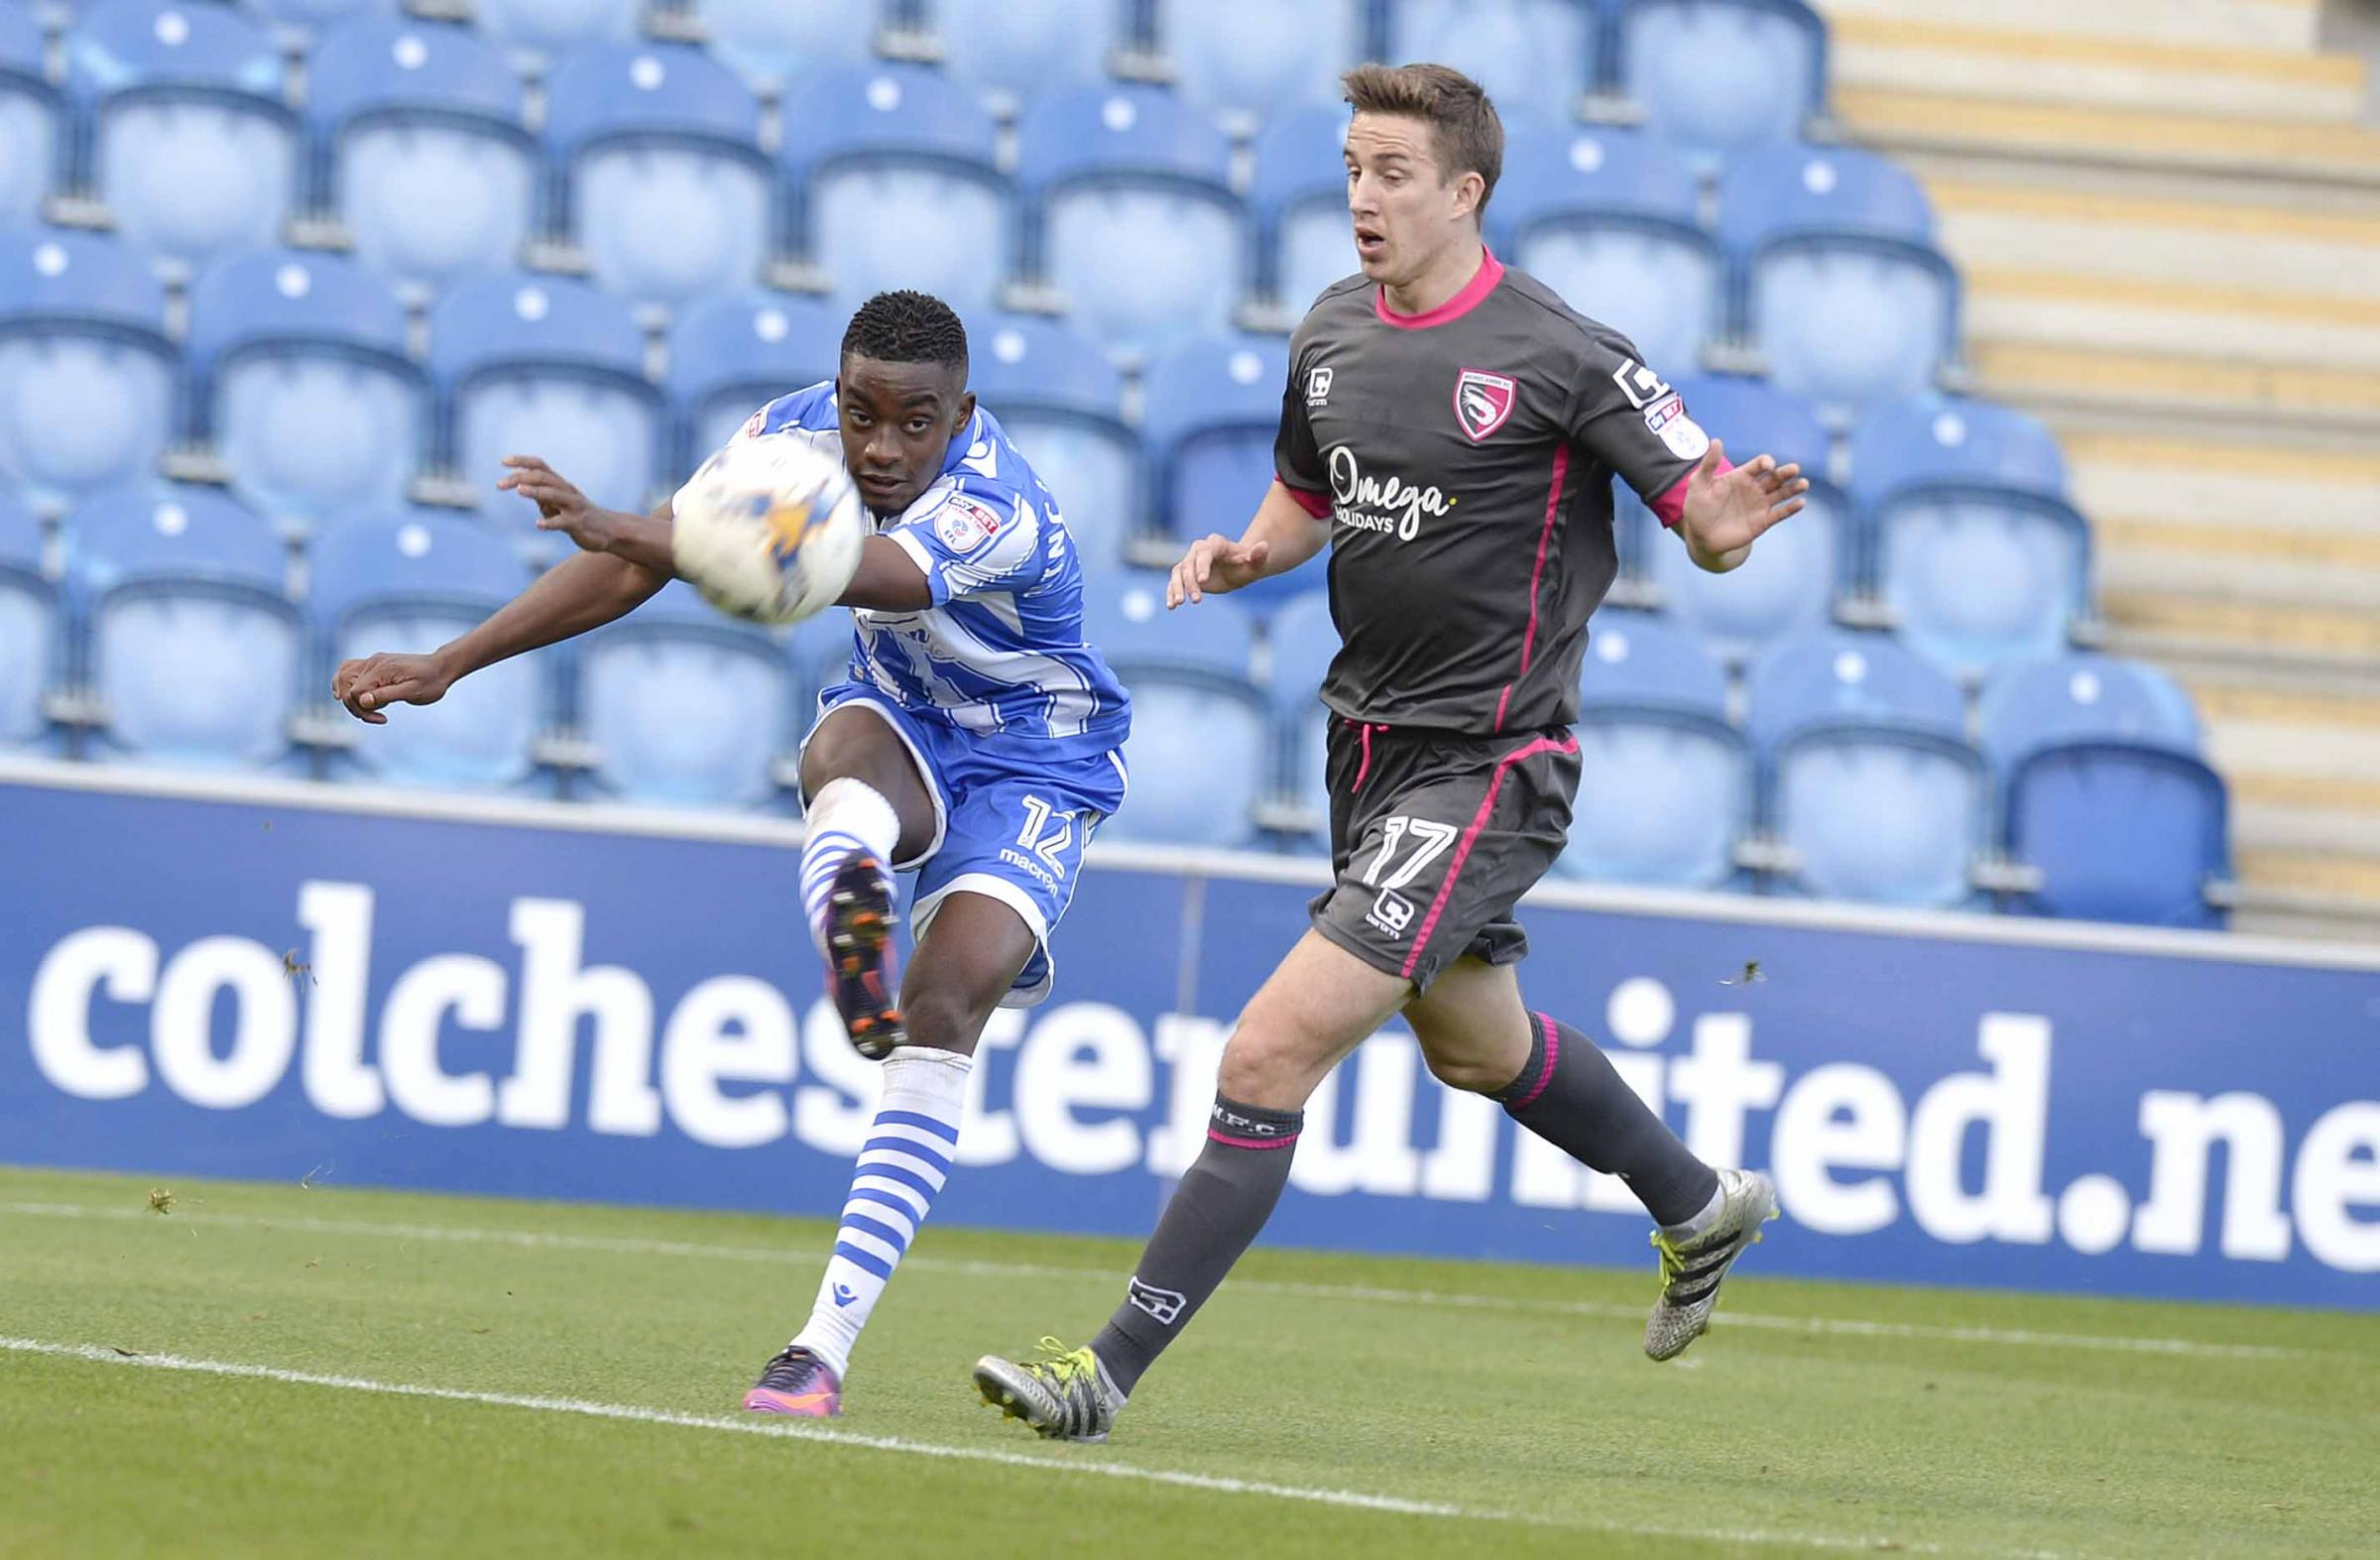 Commitment - Kane Vincent-Young has signed a new 12-month deal with Colchester United